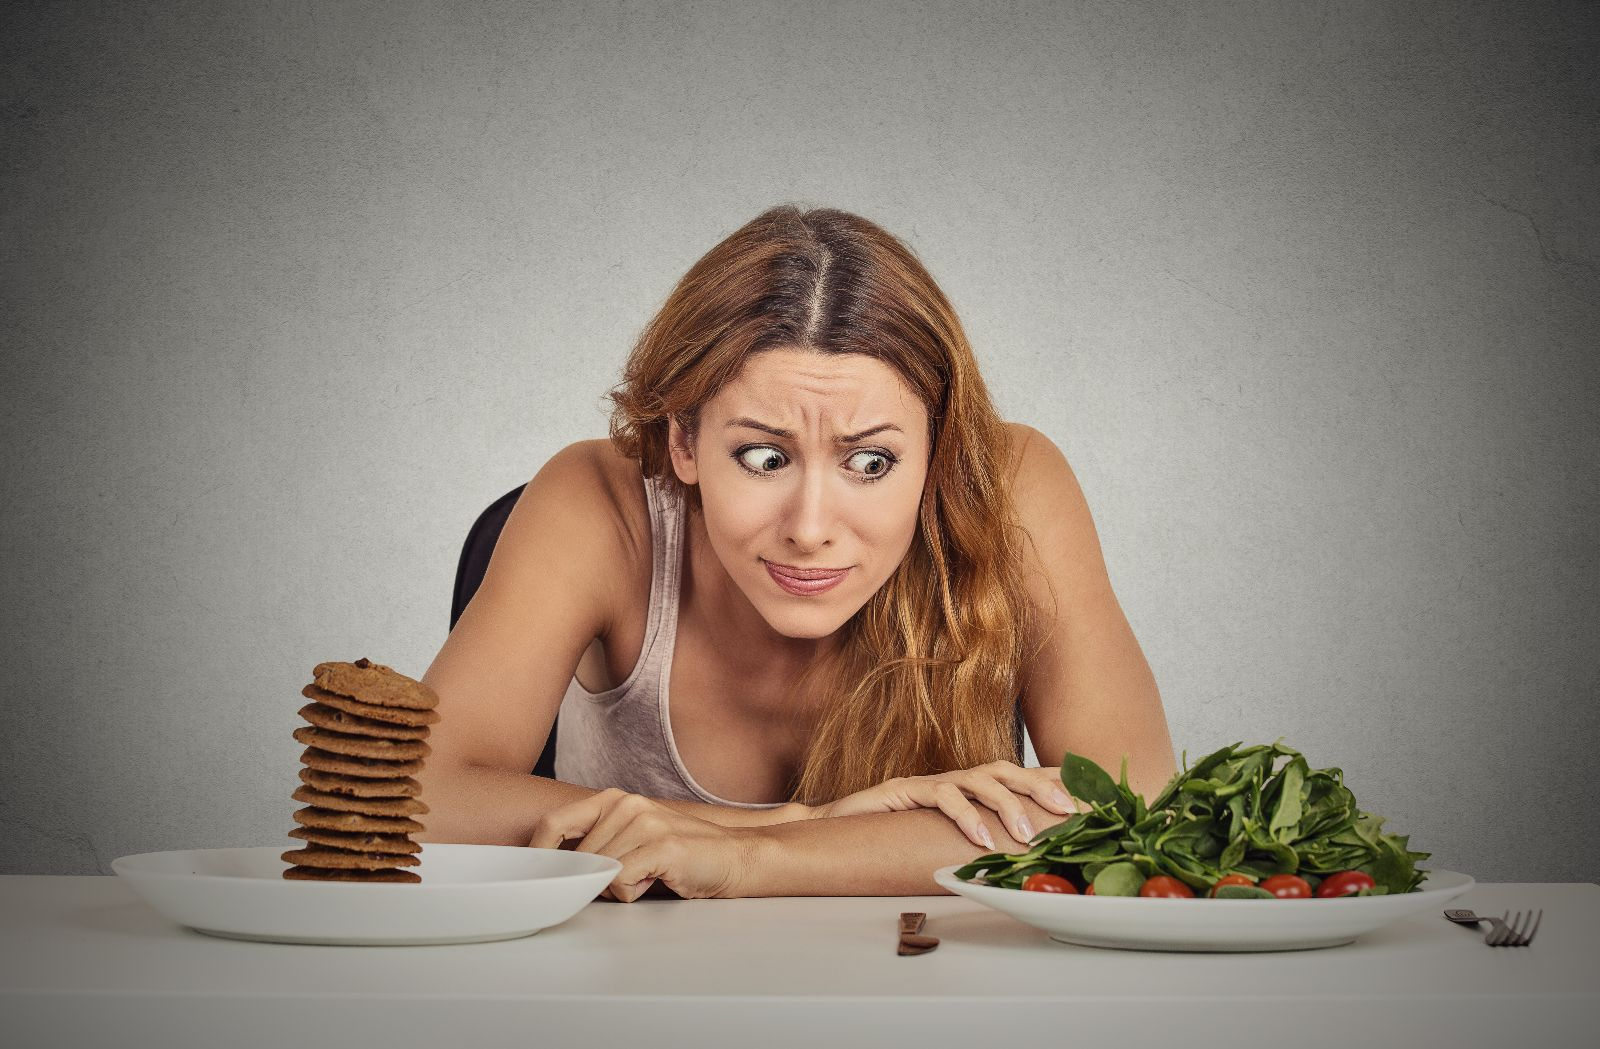 Portrait young woman deciding whether to eat healthy food or sweet cookies she is craving sitting at table isolated grey wall background. Human face expression emotion reaction Diet nutrition concept